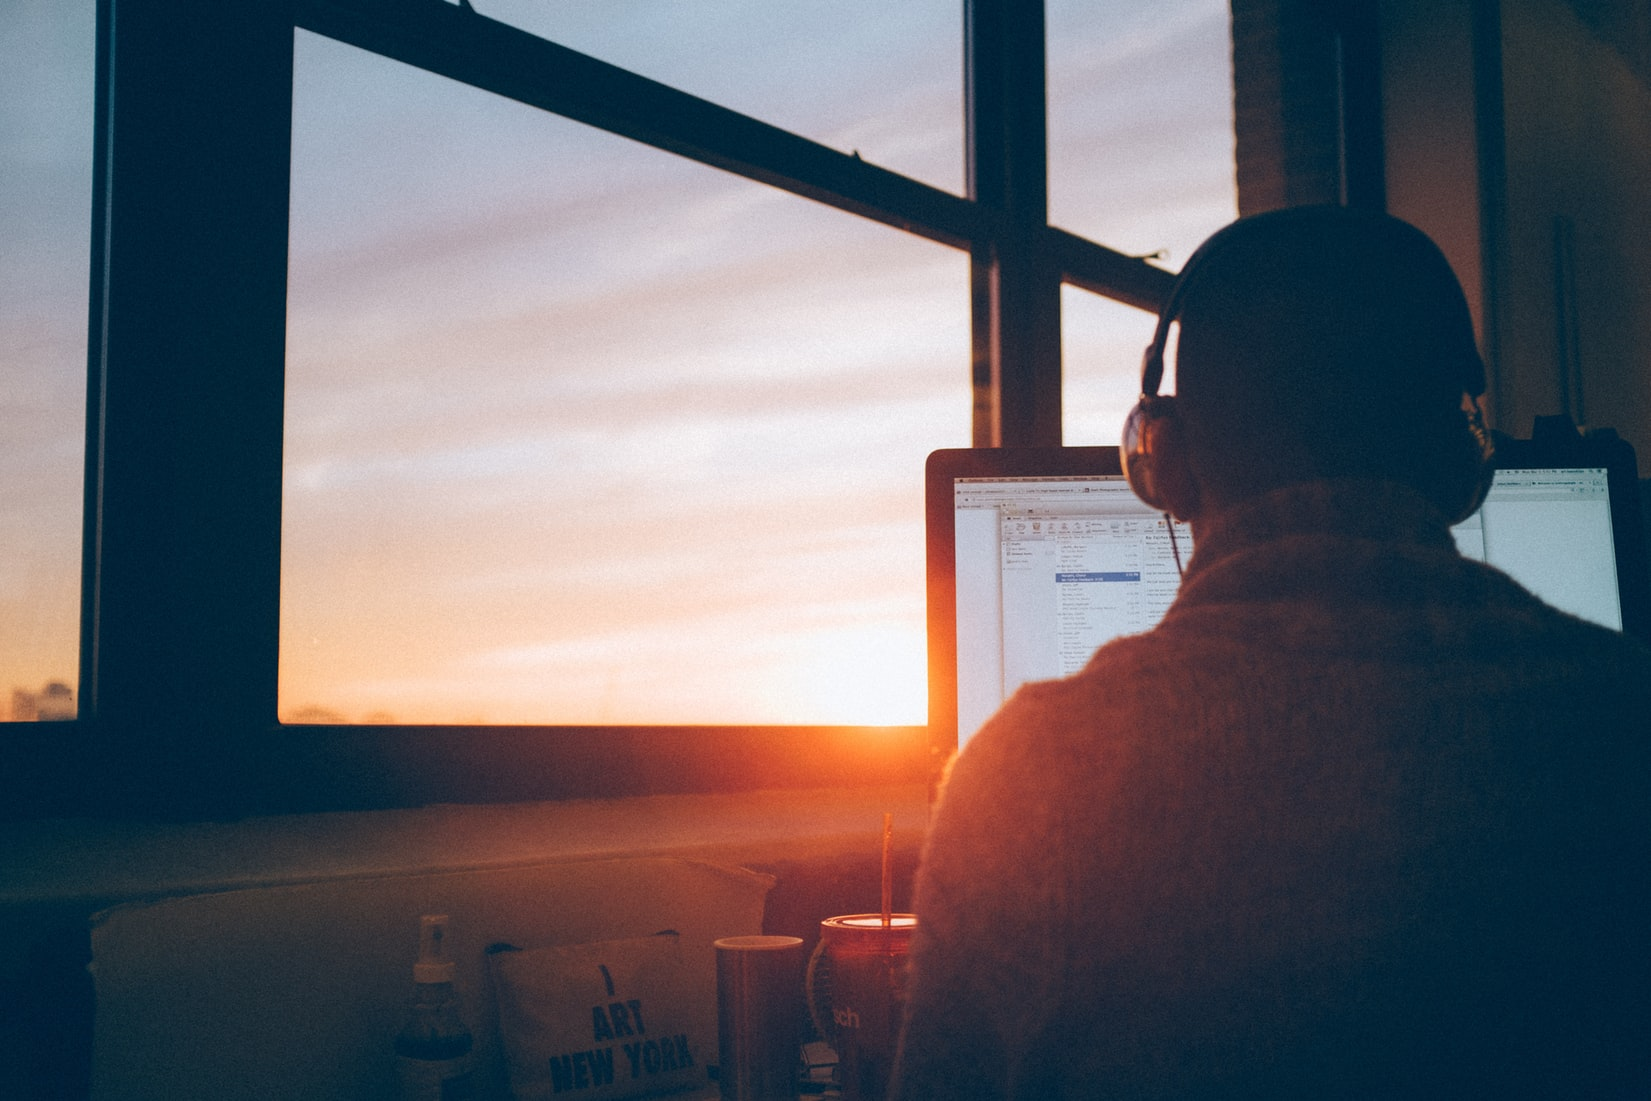 Man with headphones on working on computer near large window